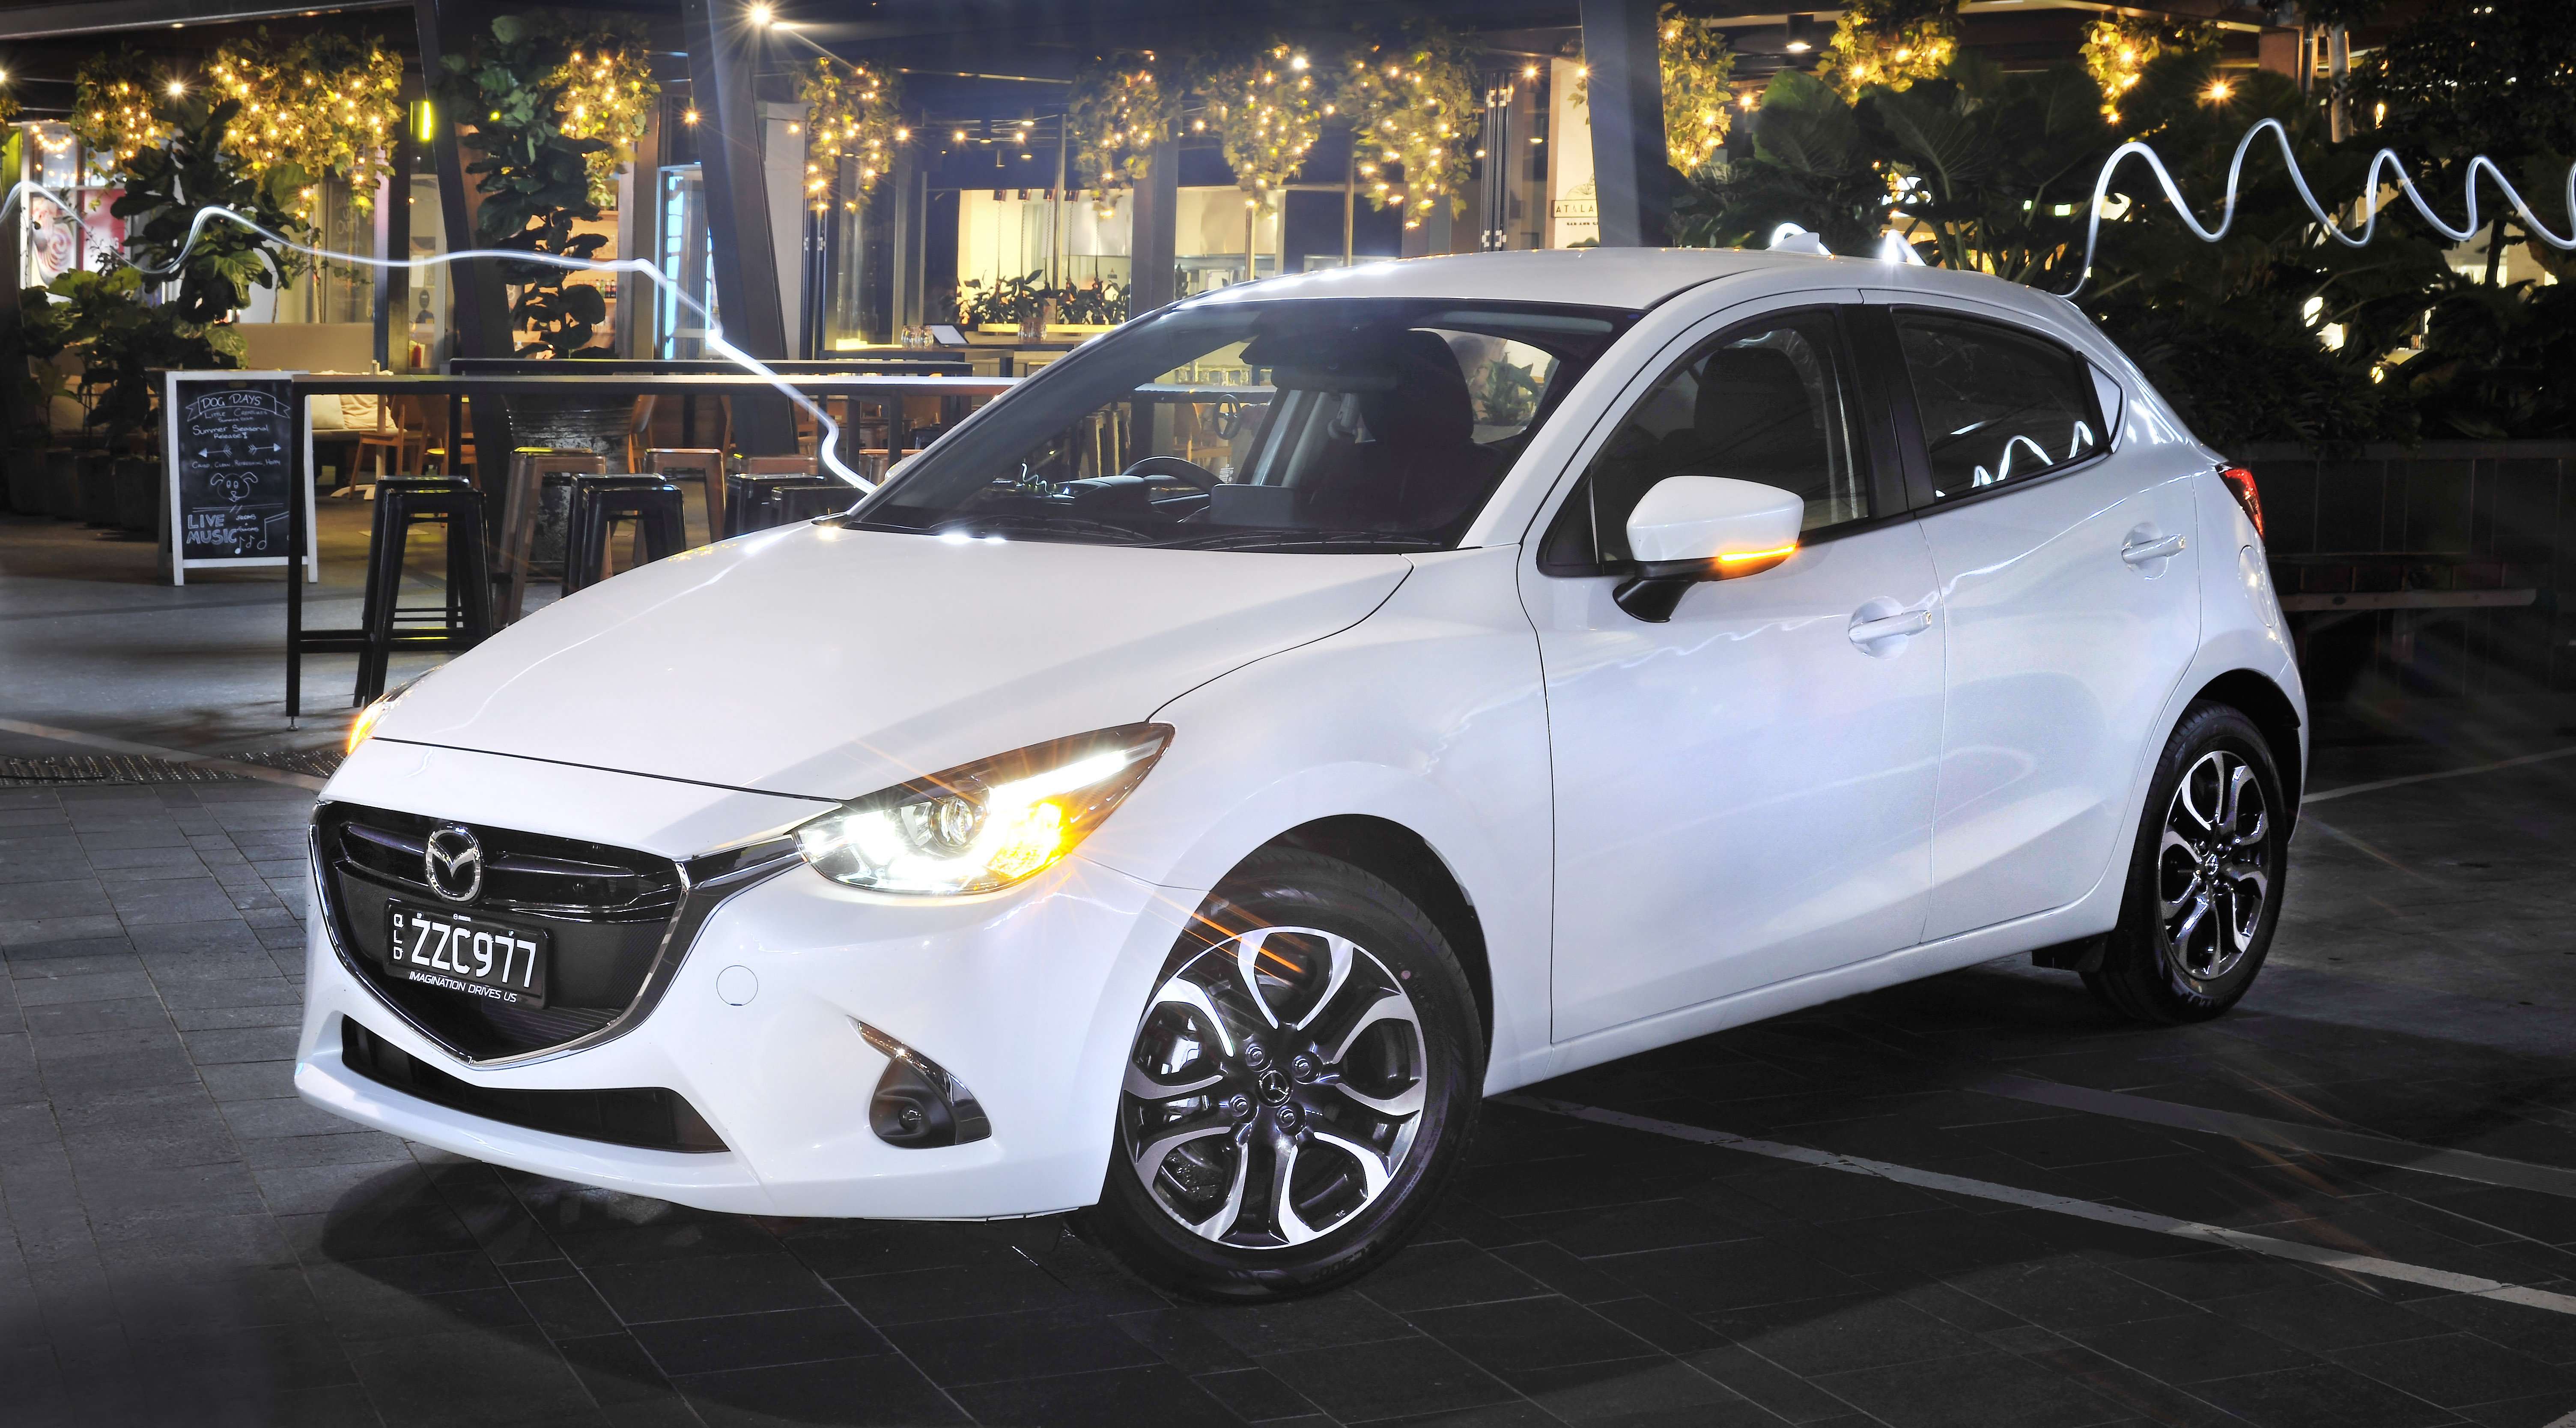 2017 Mazda 2 Pricing And Specs Standard Aeb Improved Dynamics And New Range Topper Caradvice